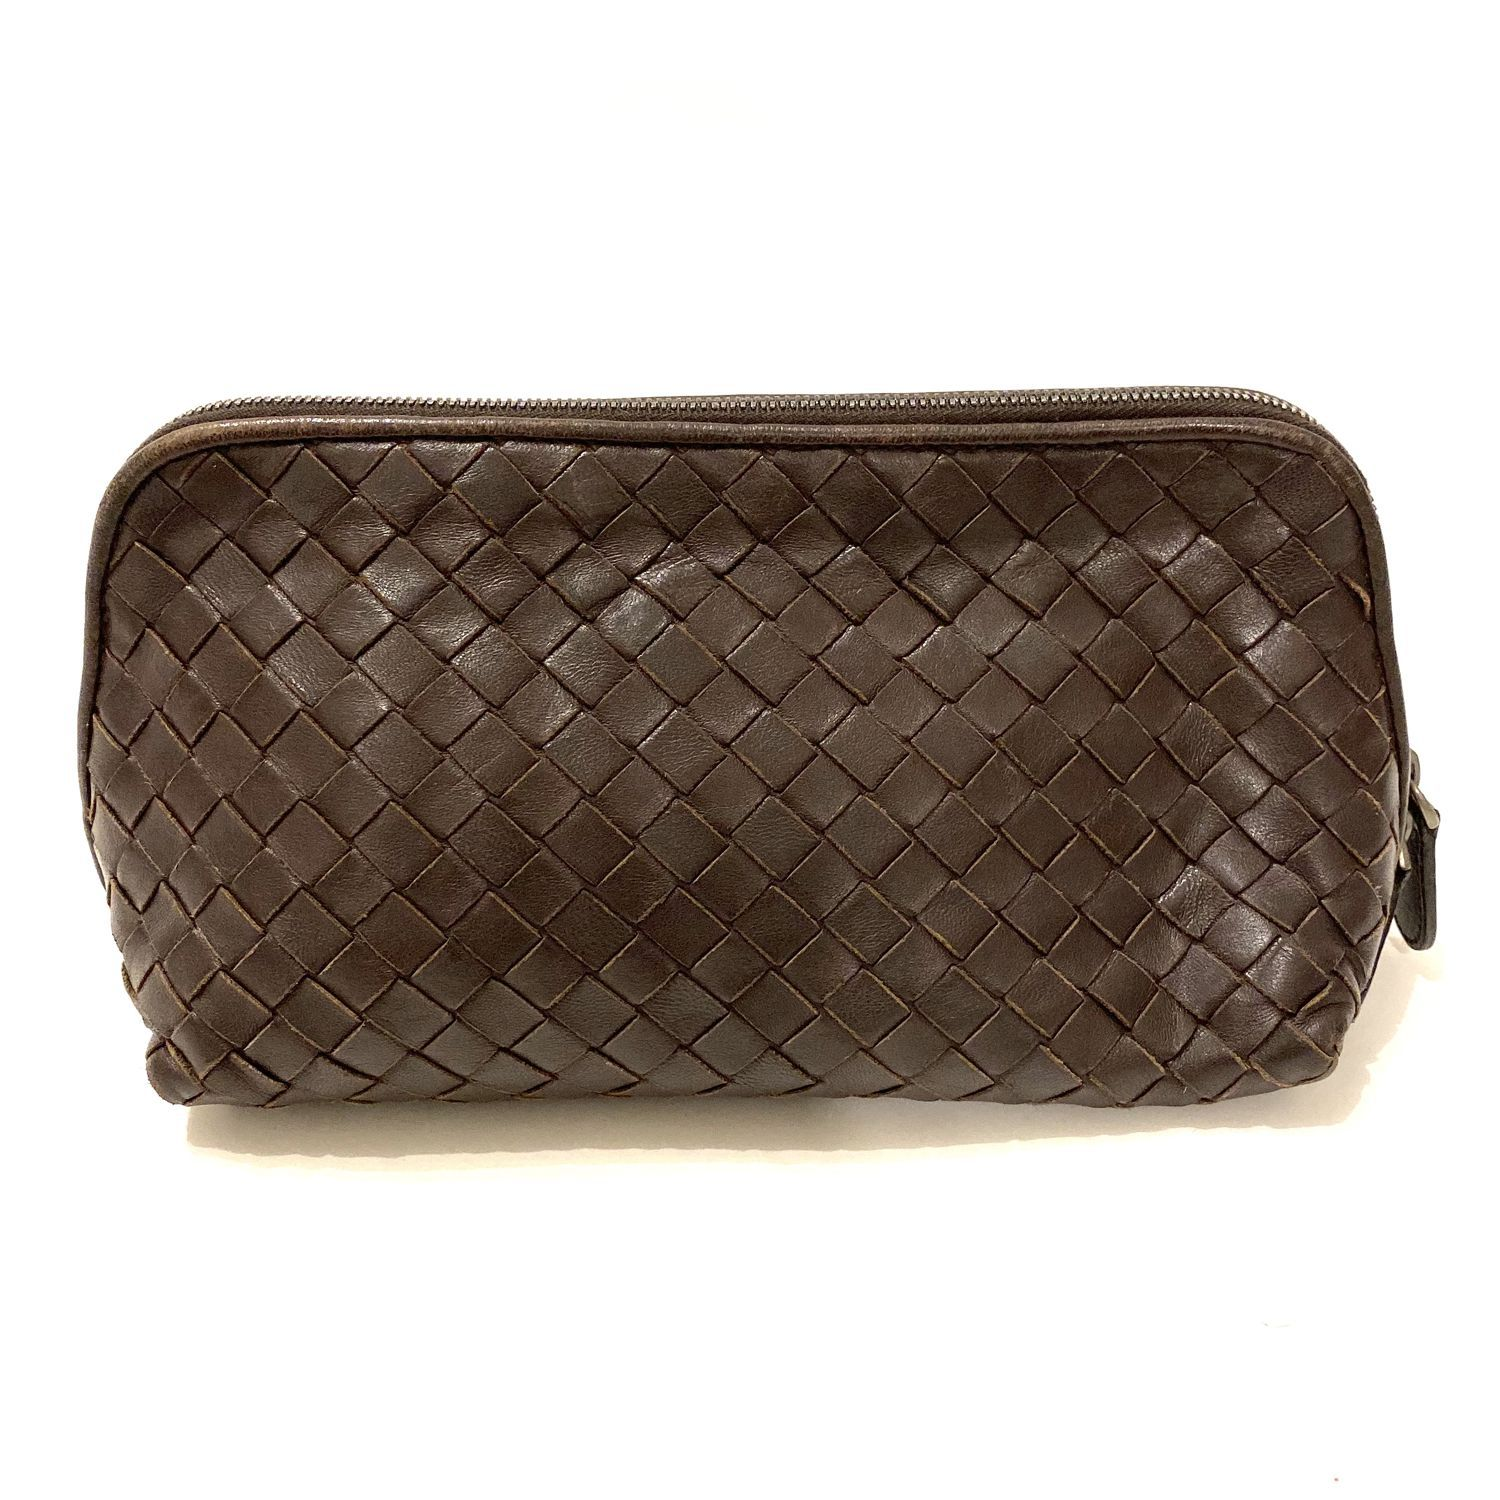 Necessaire Bottega Veneta Porta Make Intrecciato Marrom